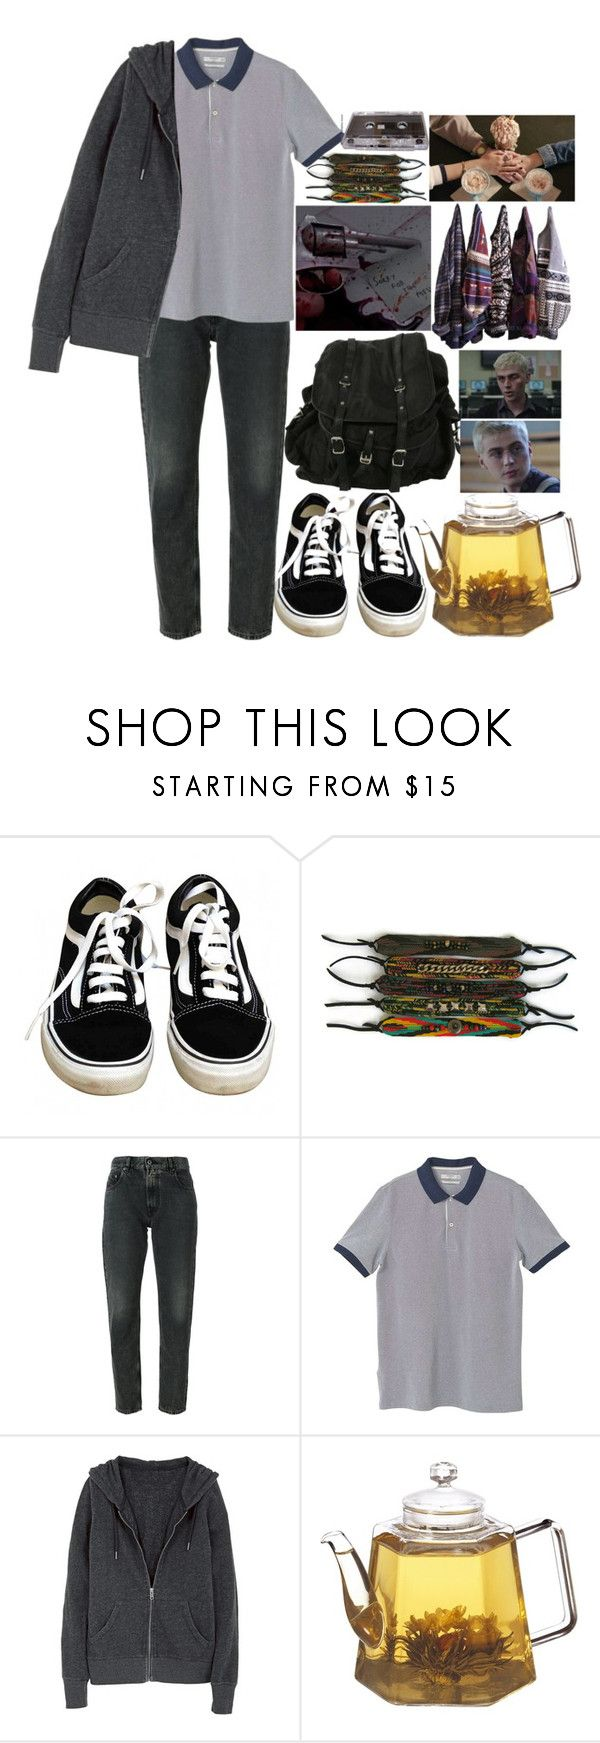 """""""{Alex Standall}"""" by soravolley ❤ liked on Polyvore featuring Vans, Diesel, MANGO, AllSaints, men's fashion, menswear and plus size clothing"""